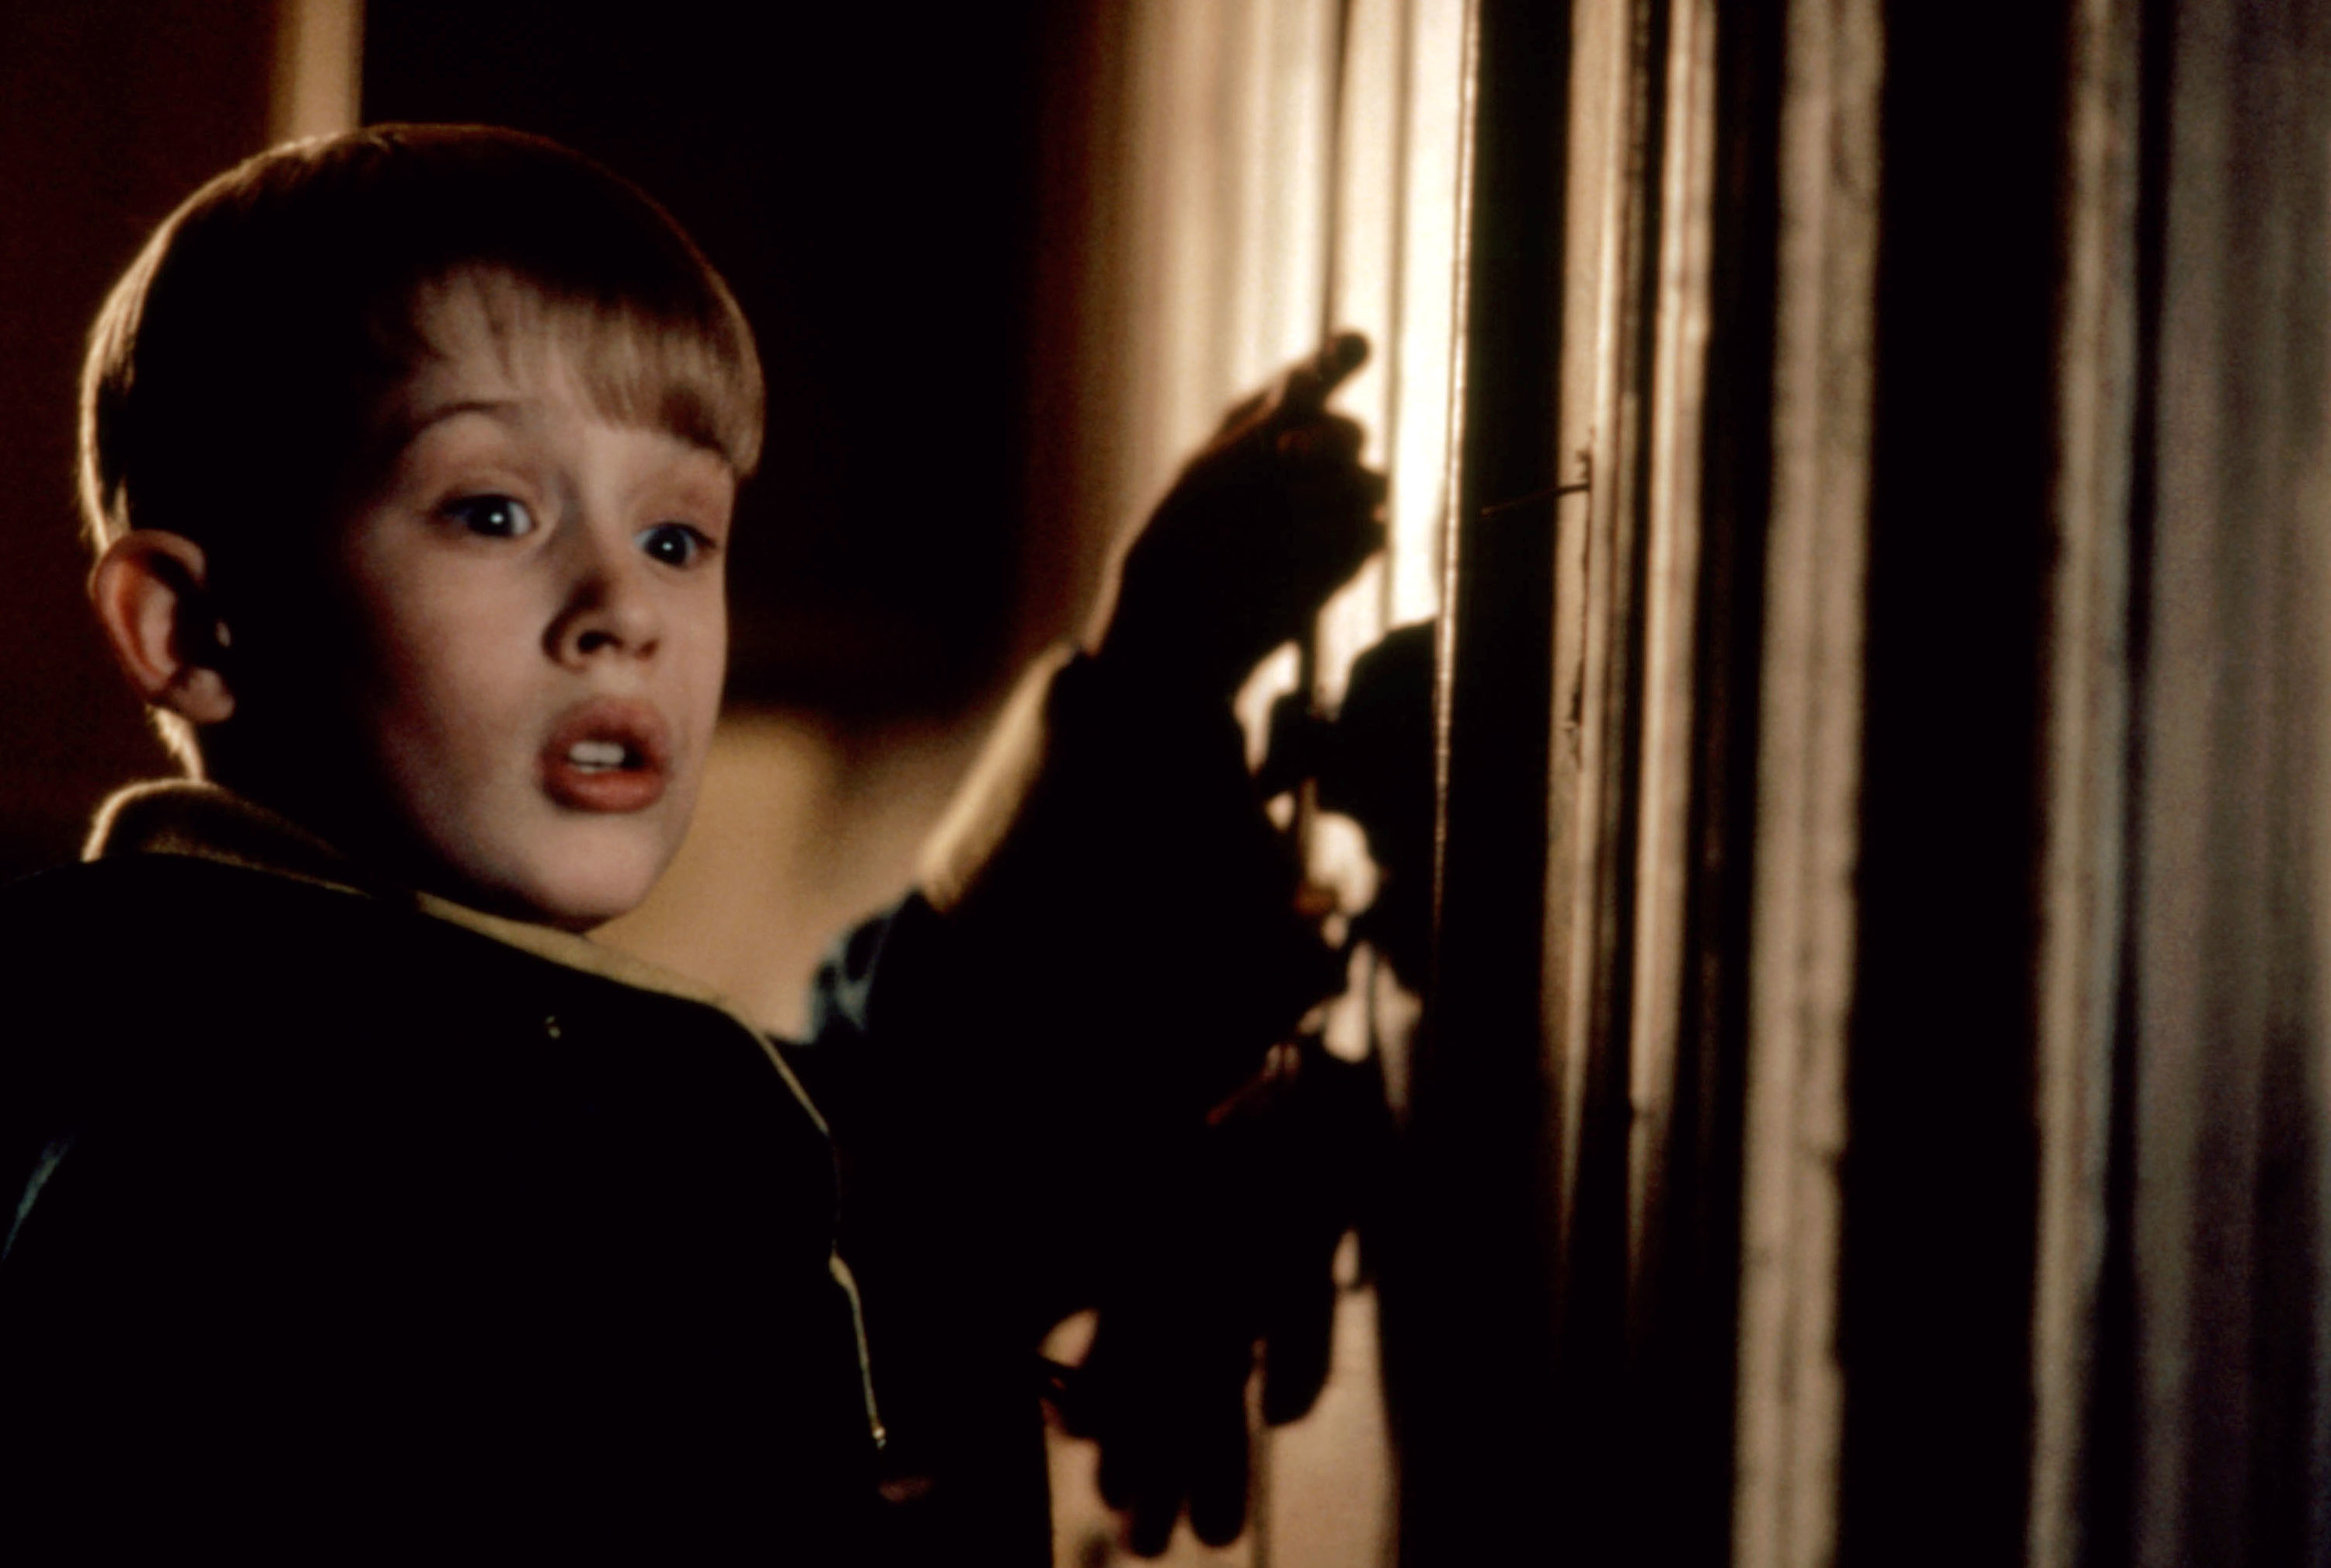 """Macaulay Culkin as Kevin McCallister preparing for a prank in """"Home Alone 2: Lost in New York"""""""